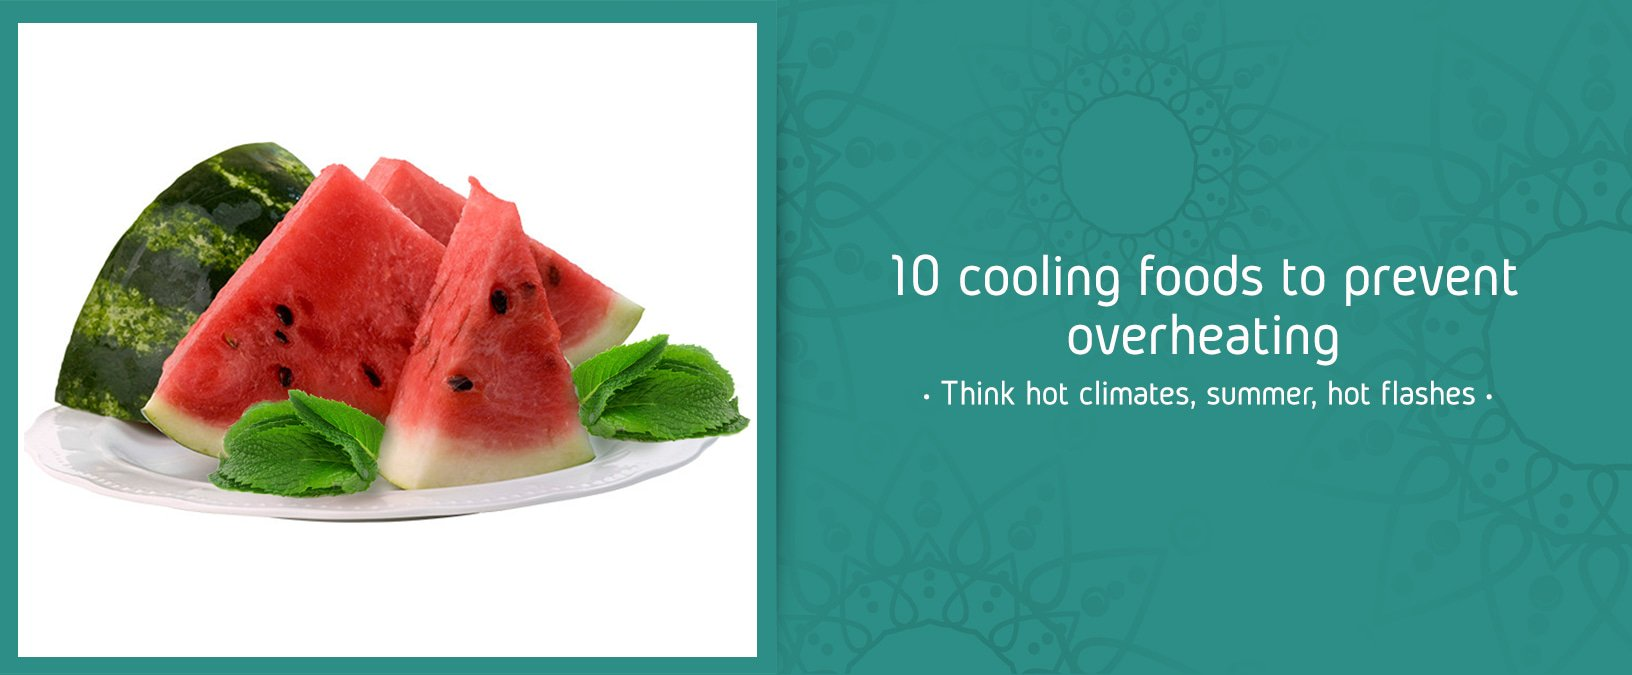 10 cooling foods